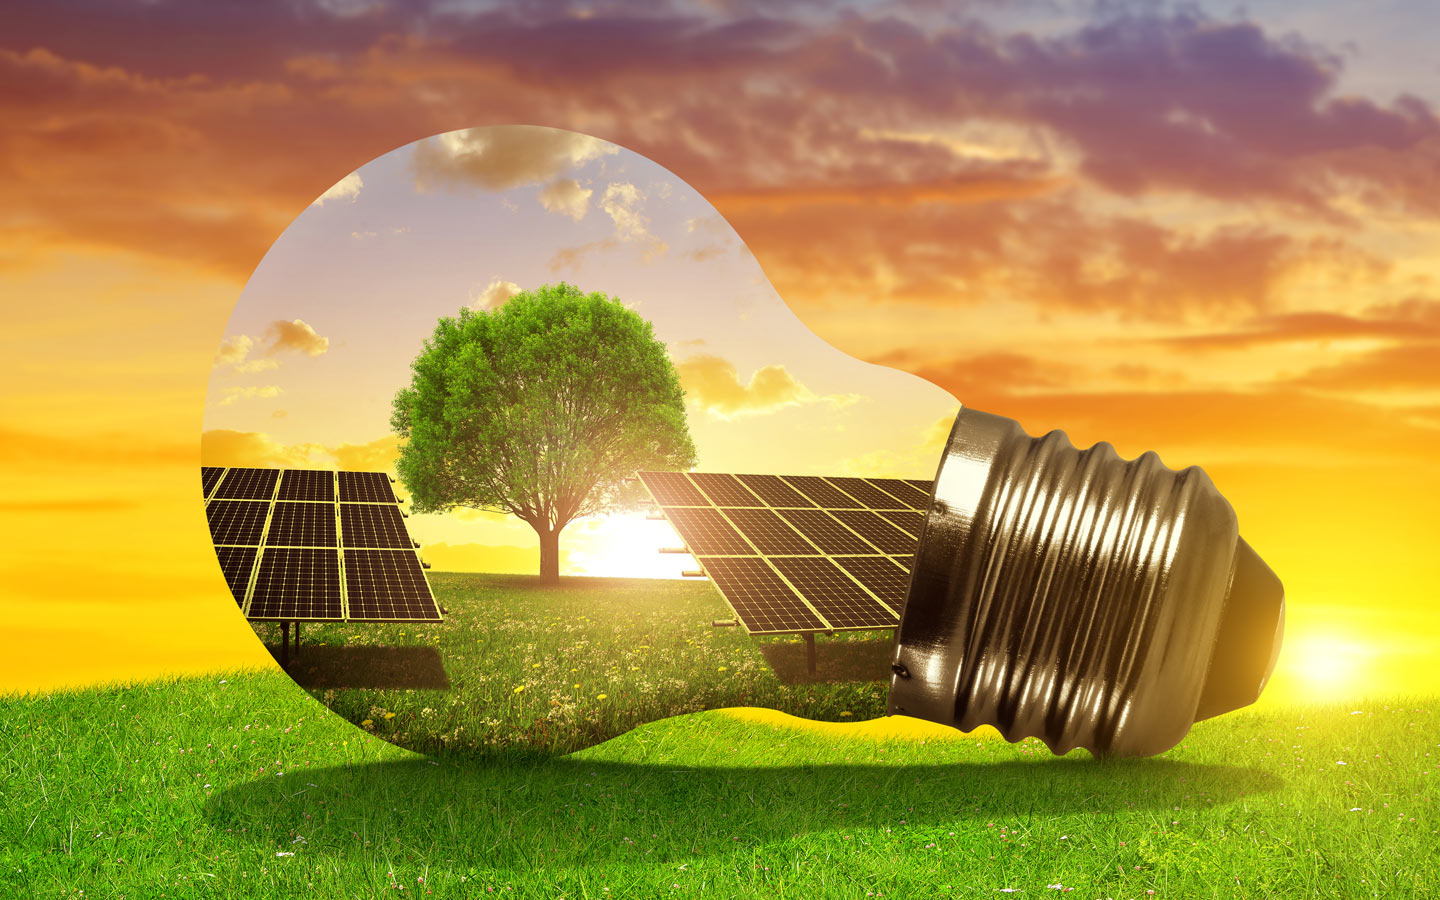 Turning your home solar is going to help a long with going green and saving the environment. The use of solar energy has greater implication than just the cost saving on DEWA bills